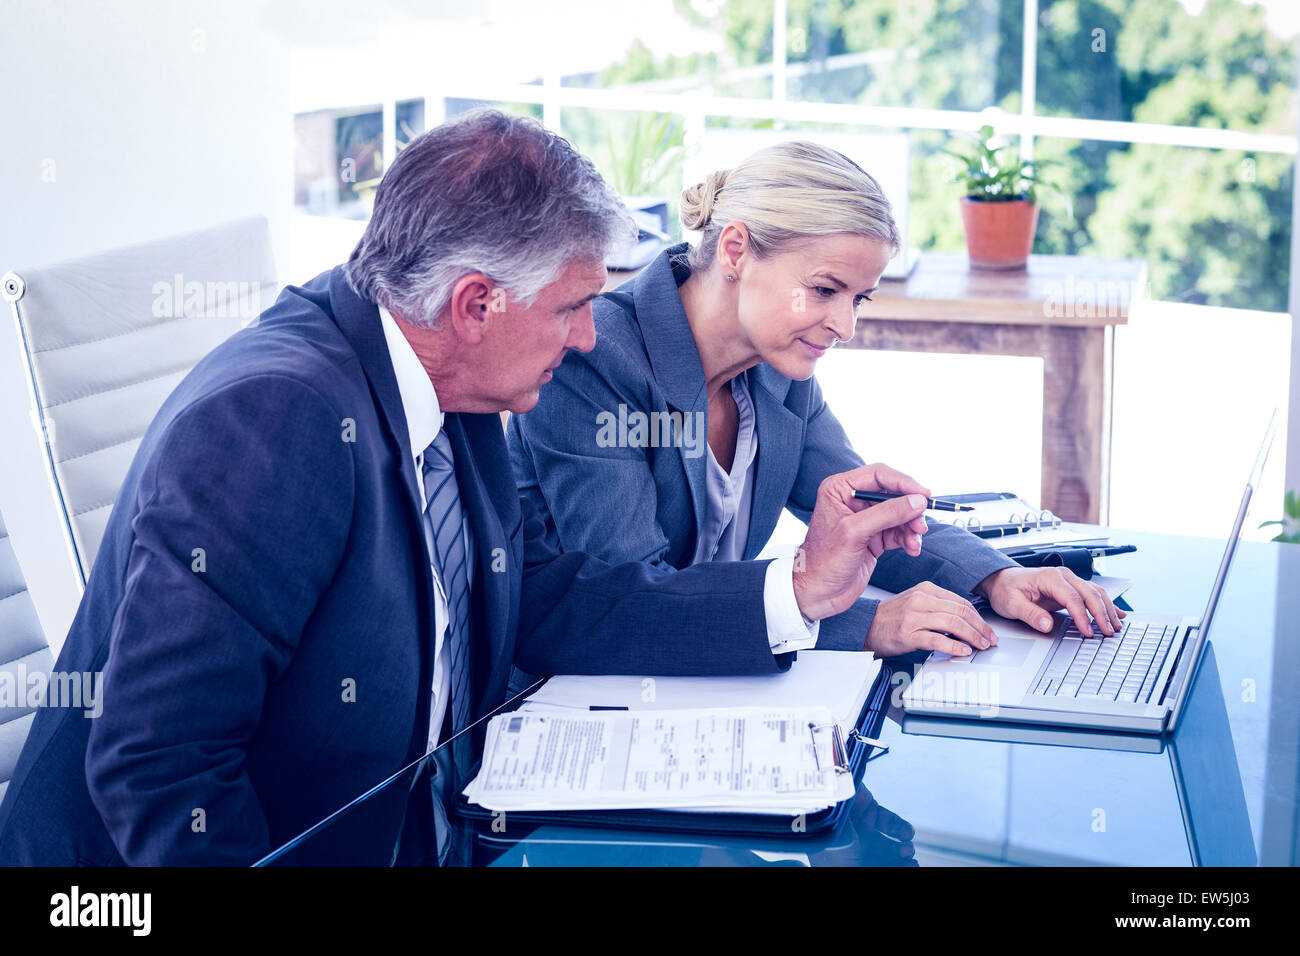 Business team using laptop and planning - Stock Image